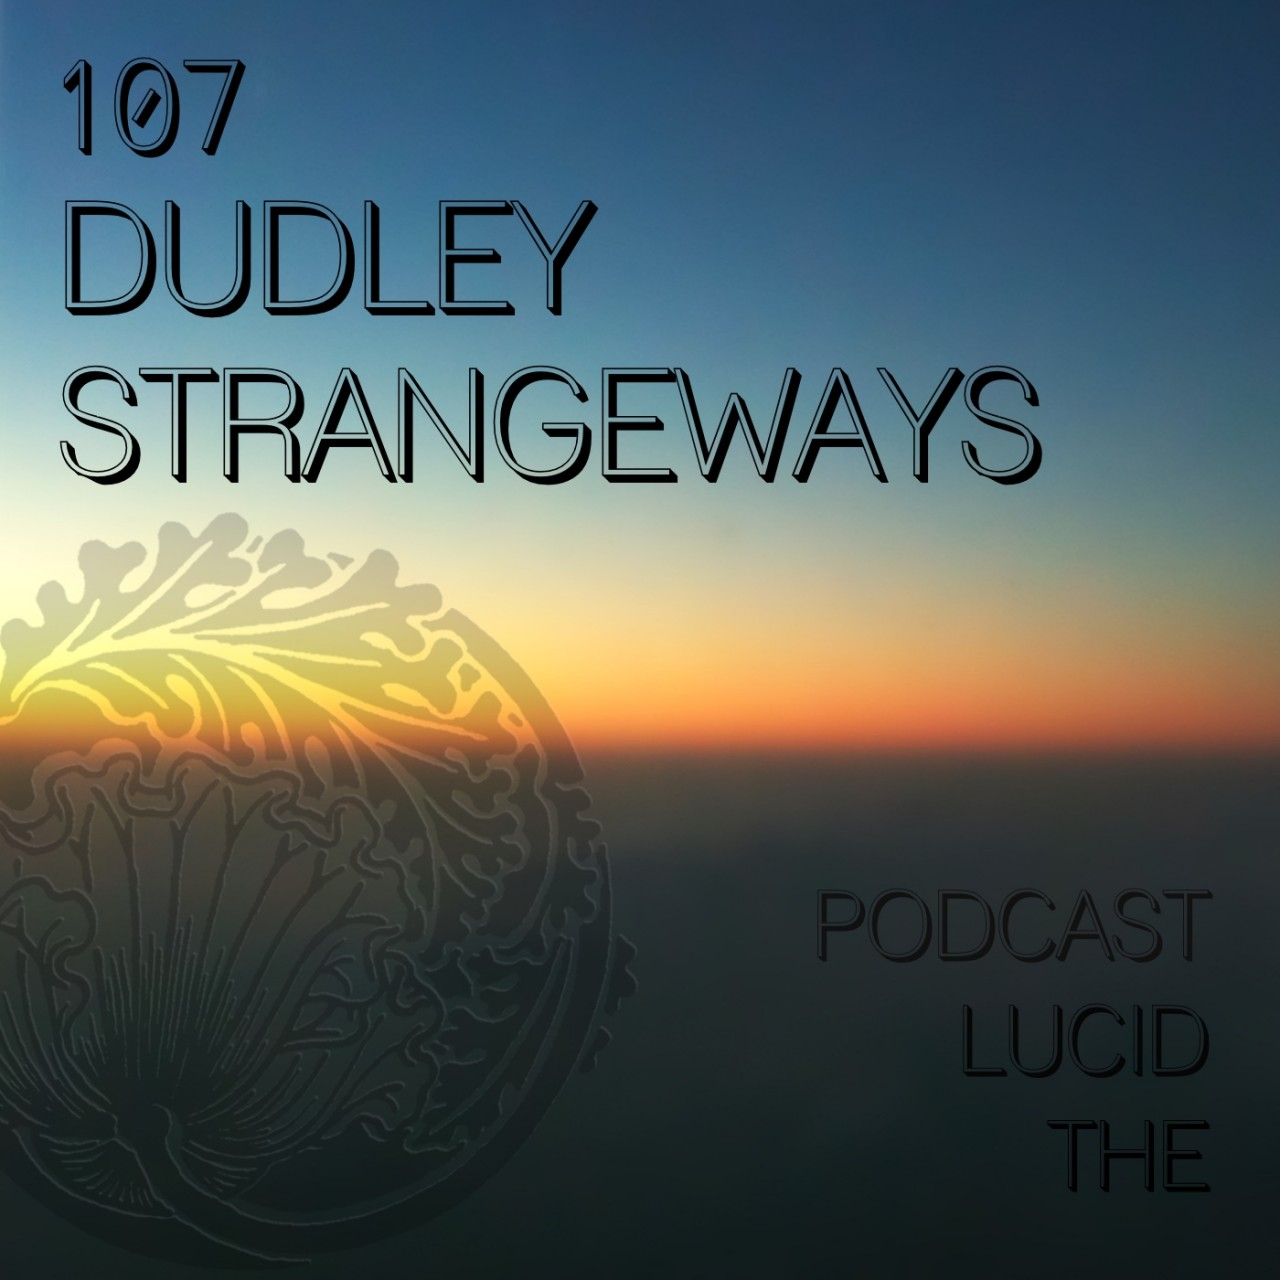 The Lucid Podcast 107 Dudley Strangeways